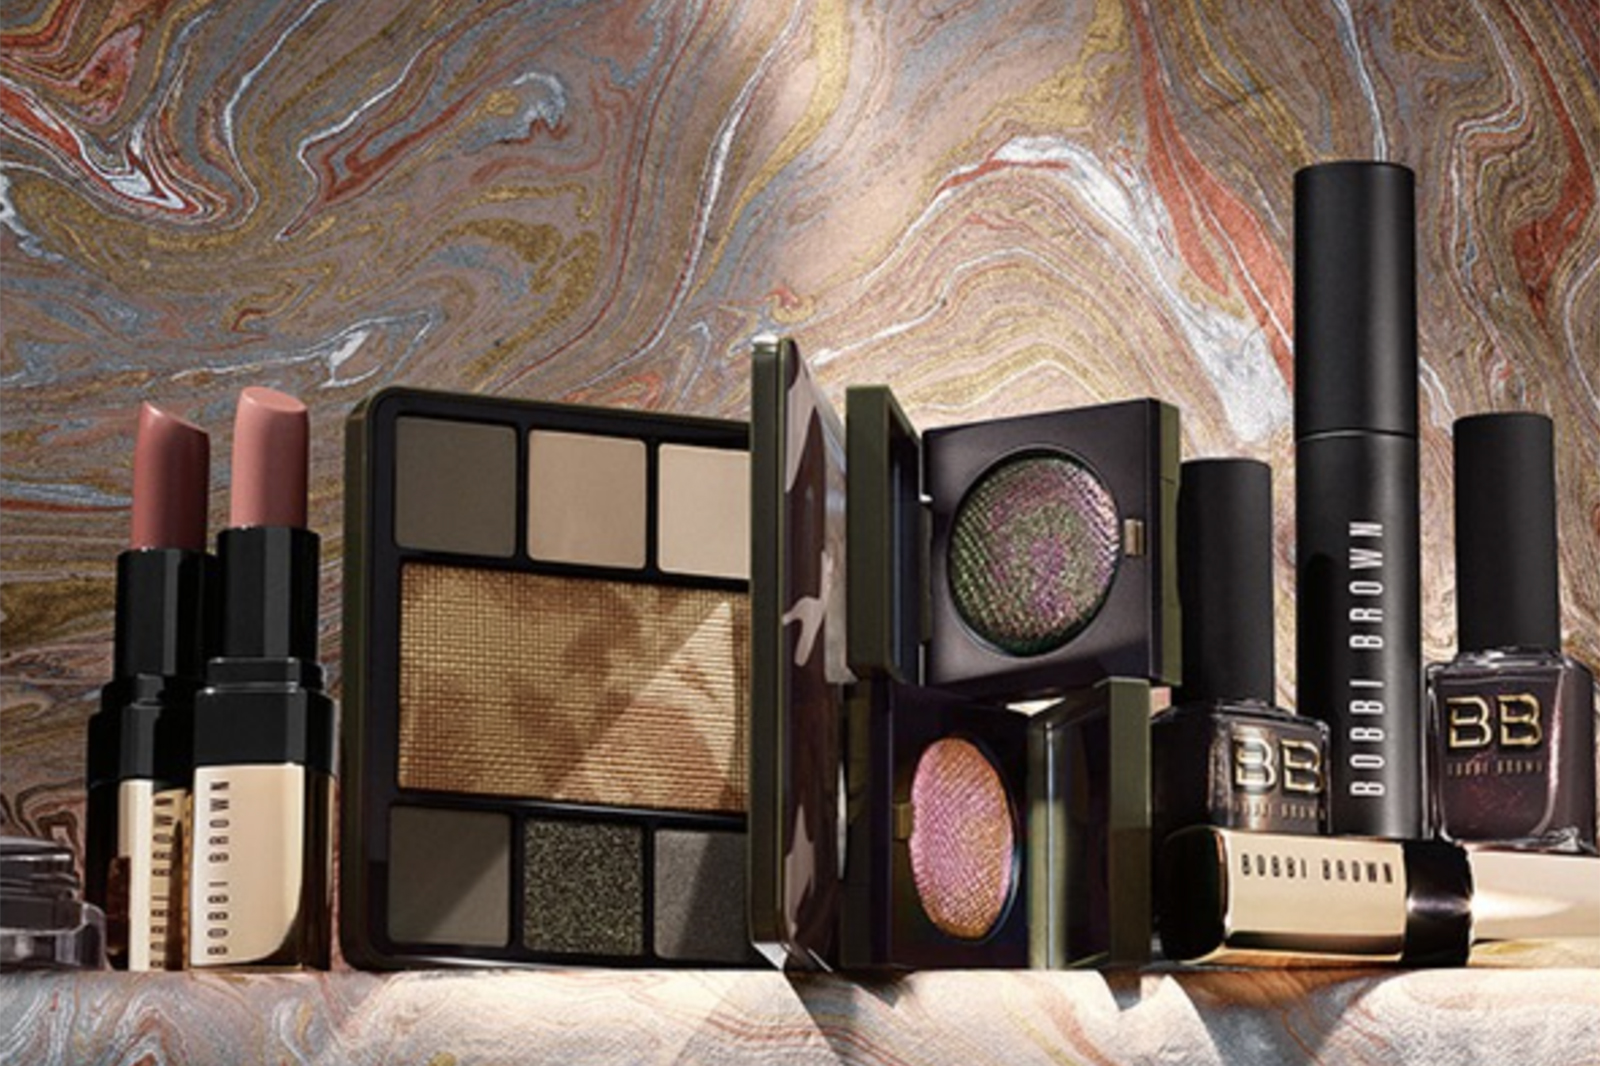 bobbi brown collection fall automne 2018 camo luxe avis test